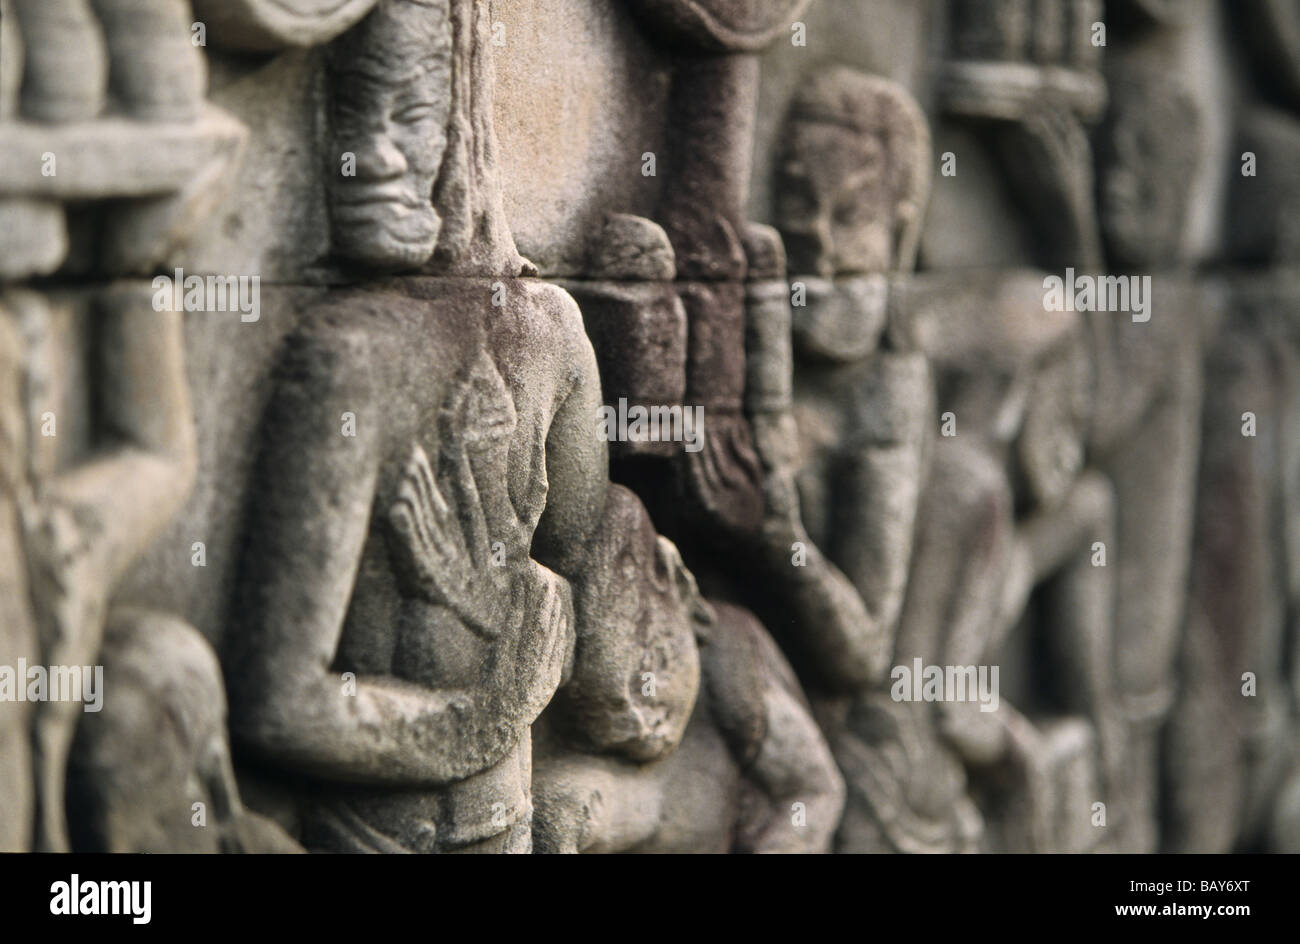 stone reliefs, Temple Bayon Angkor Thom, Cambodia - Stock Image